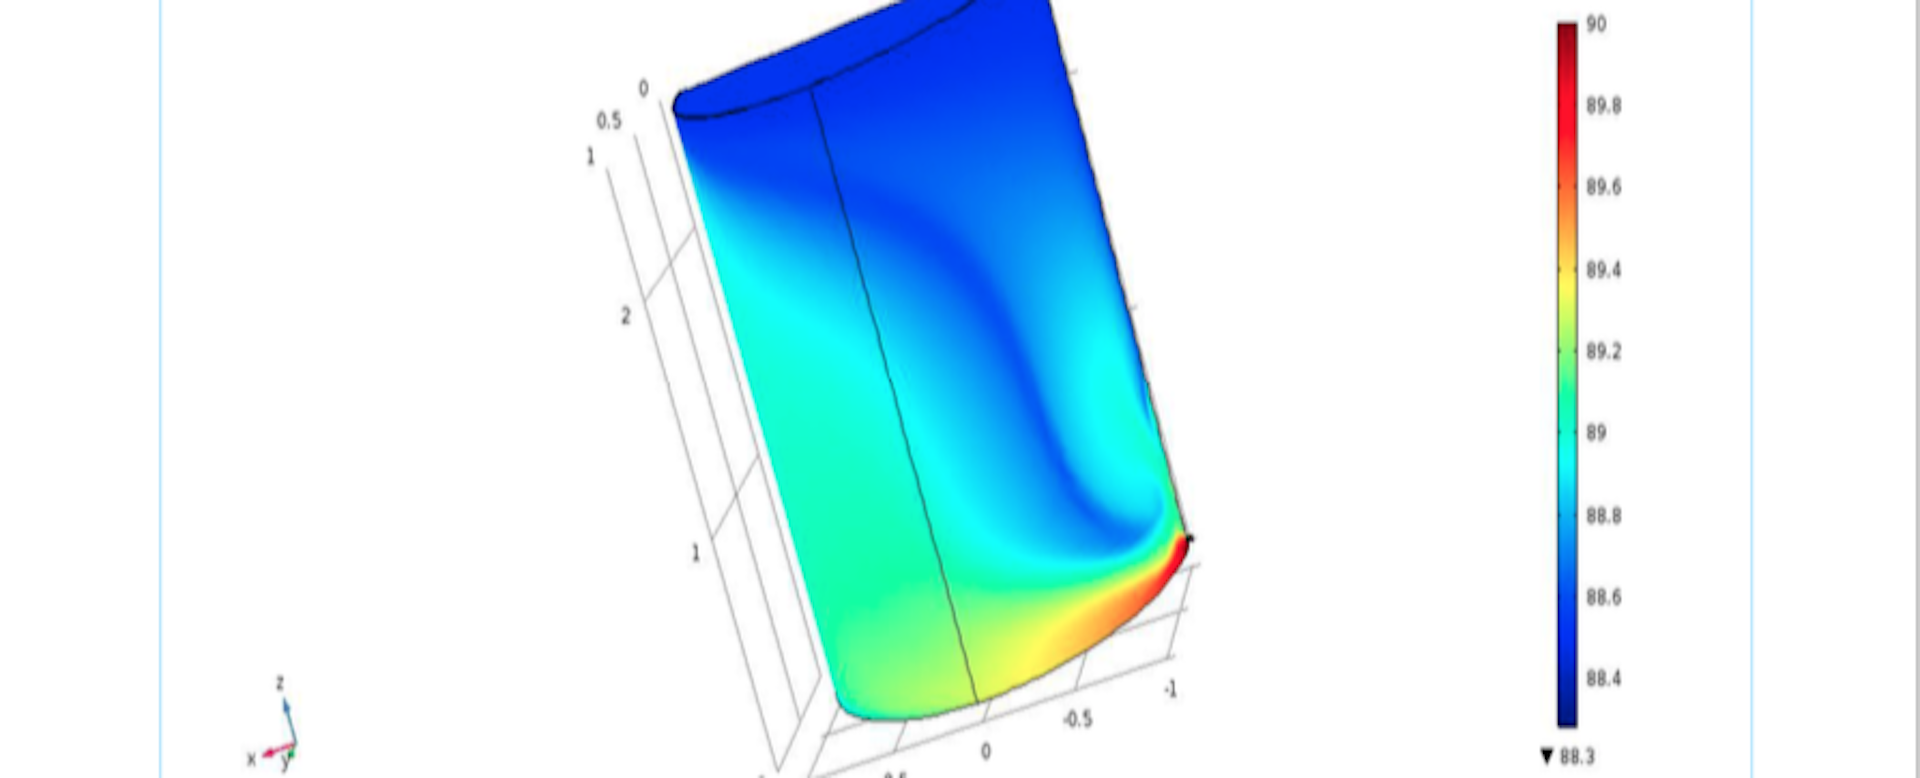 comsol in the cloud